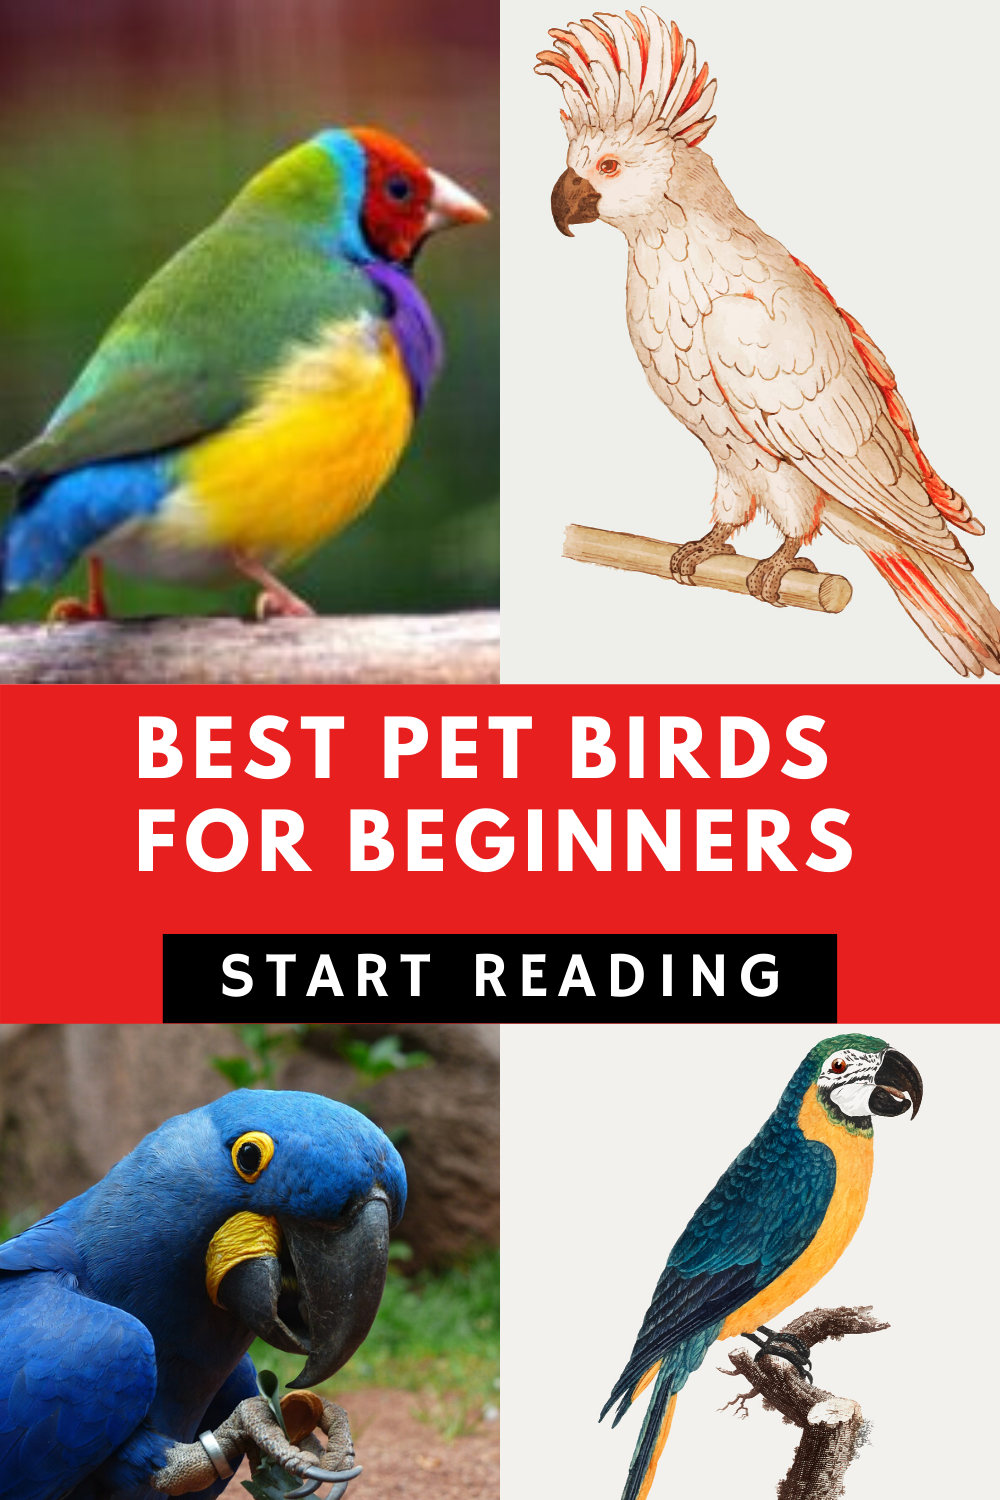 Best Pet Birds For Beginners Best pet birds, Pet birds, Pets